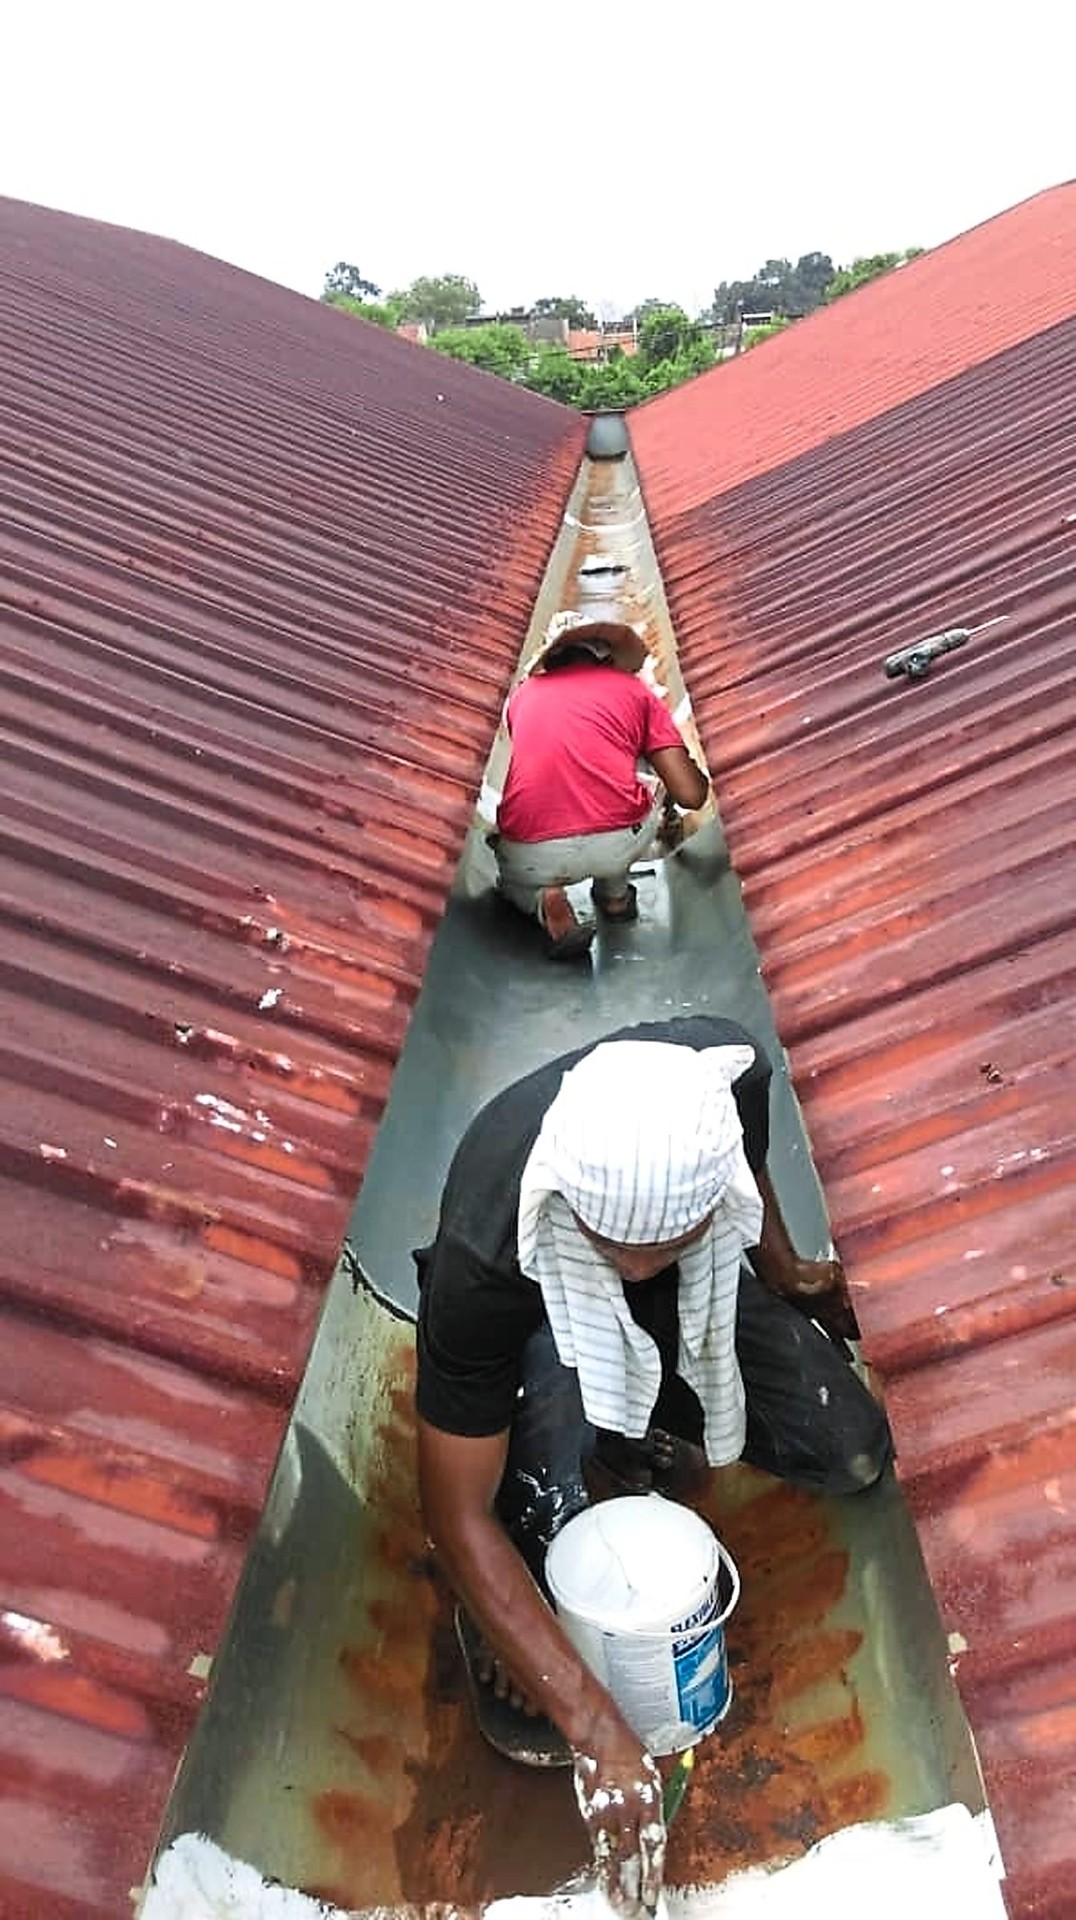 Workers repairing the broken gutters, which previously resulted in water leaking onto stalls during downpours.